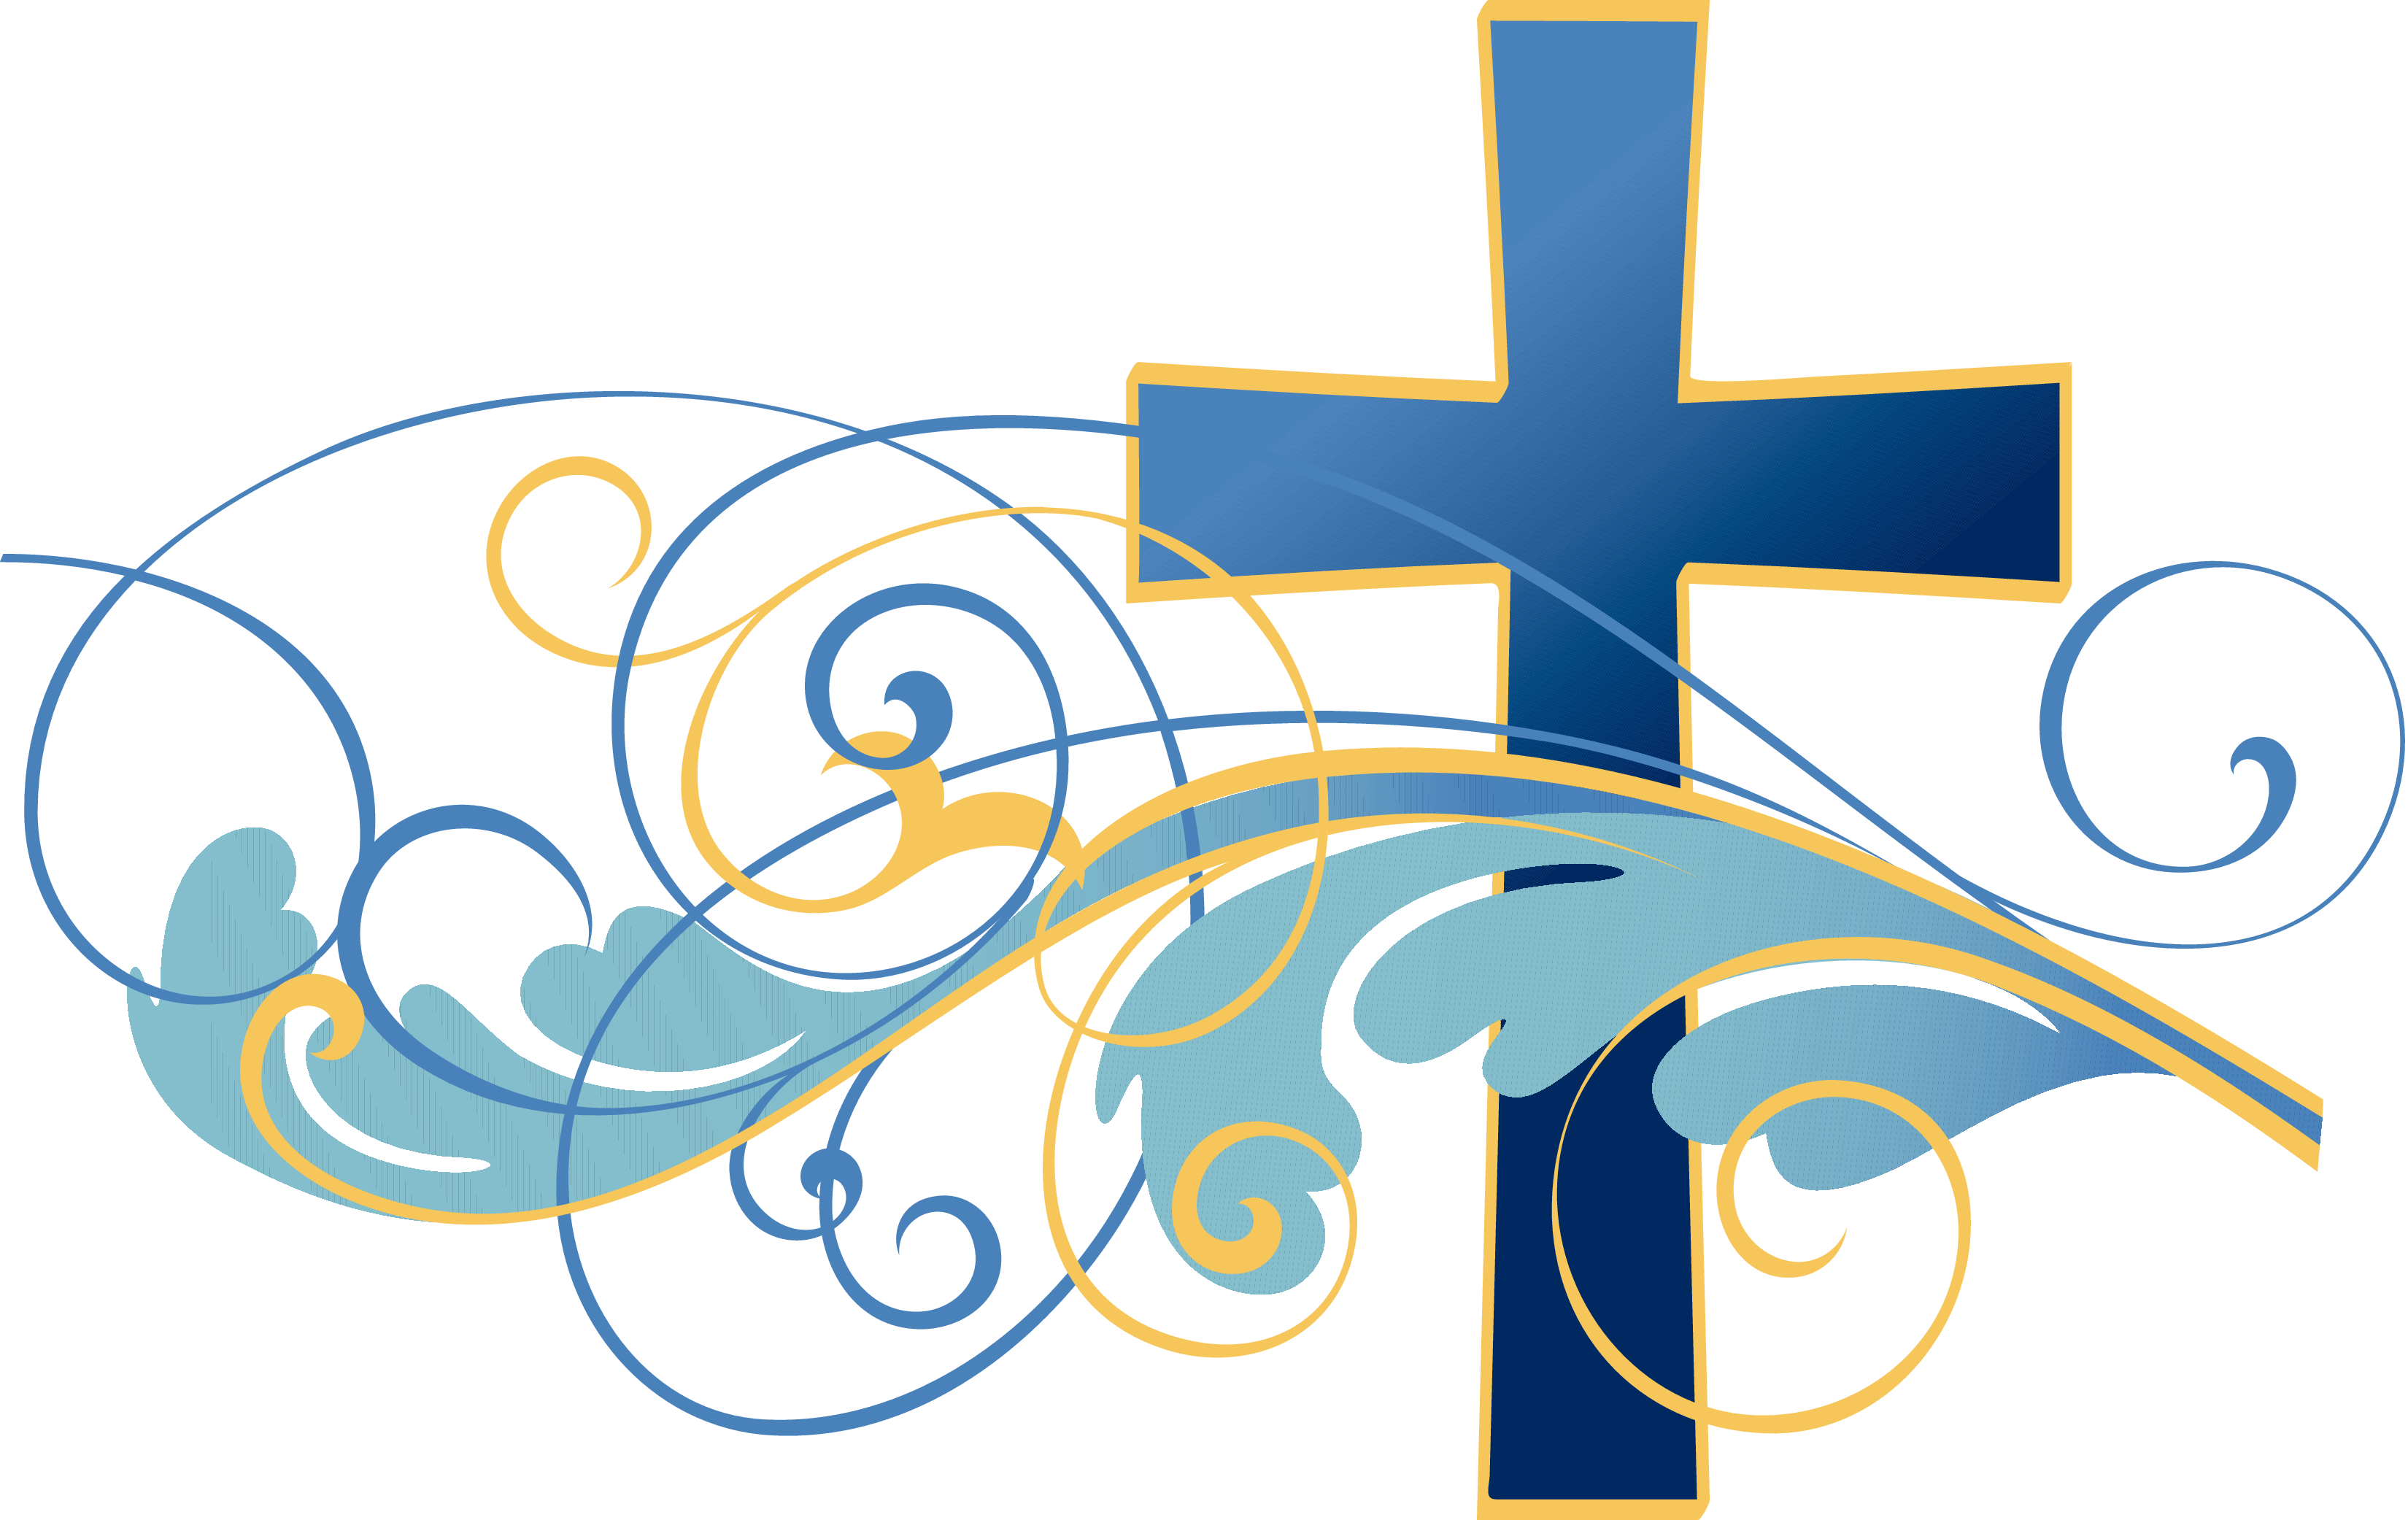 Holy family church. Baptism clipart catholic baptism